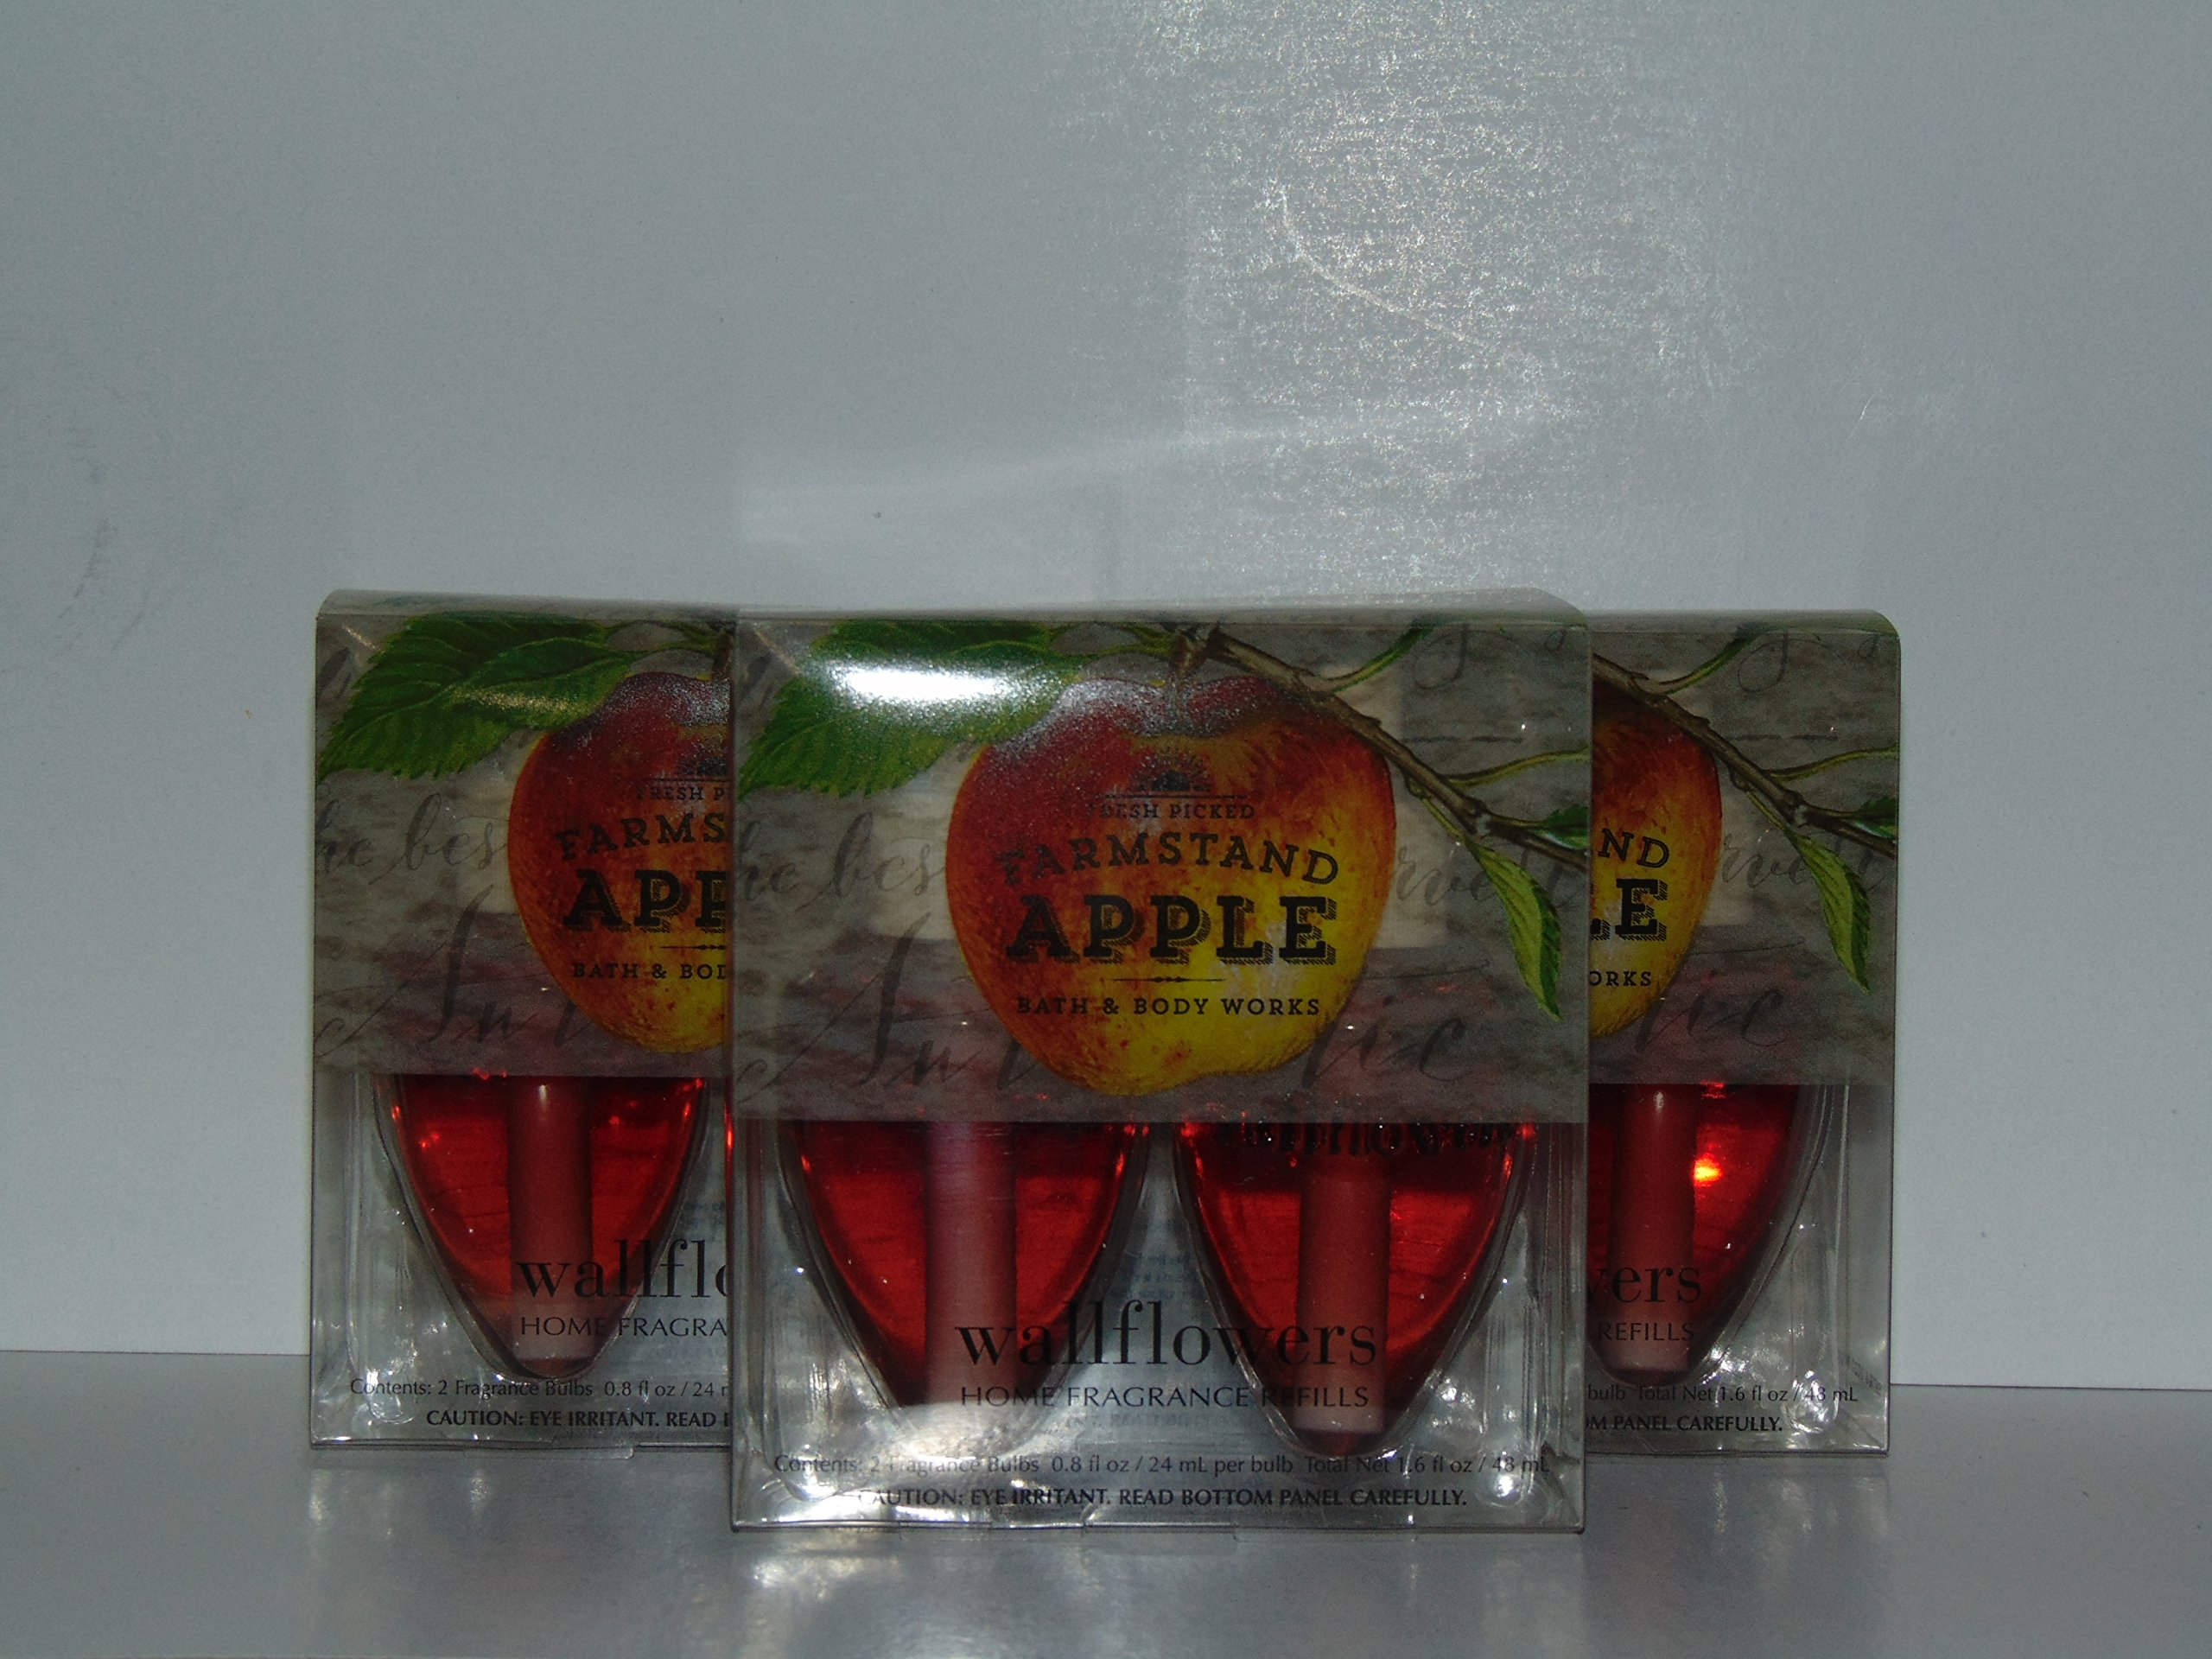 Lot of 3 Bath & Body Works Farmstand Apple Wallflower 2 Bulb Refill Packs (6 Bulbs Total) by Bath & Body Works (Image #1)